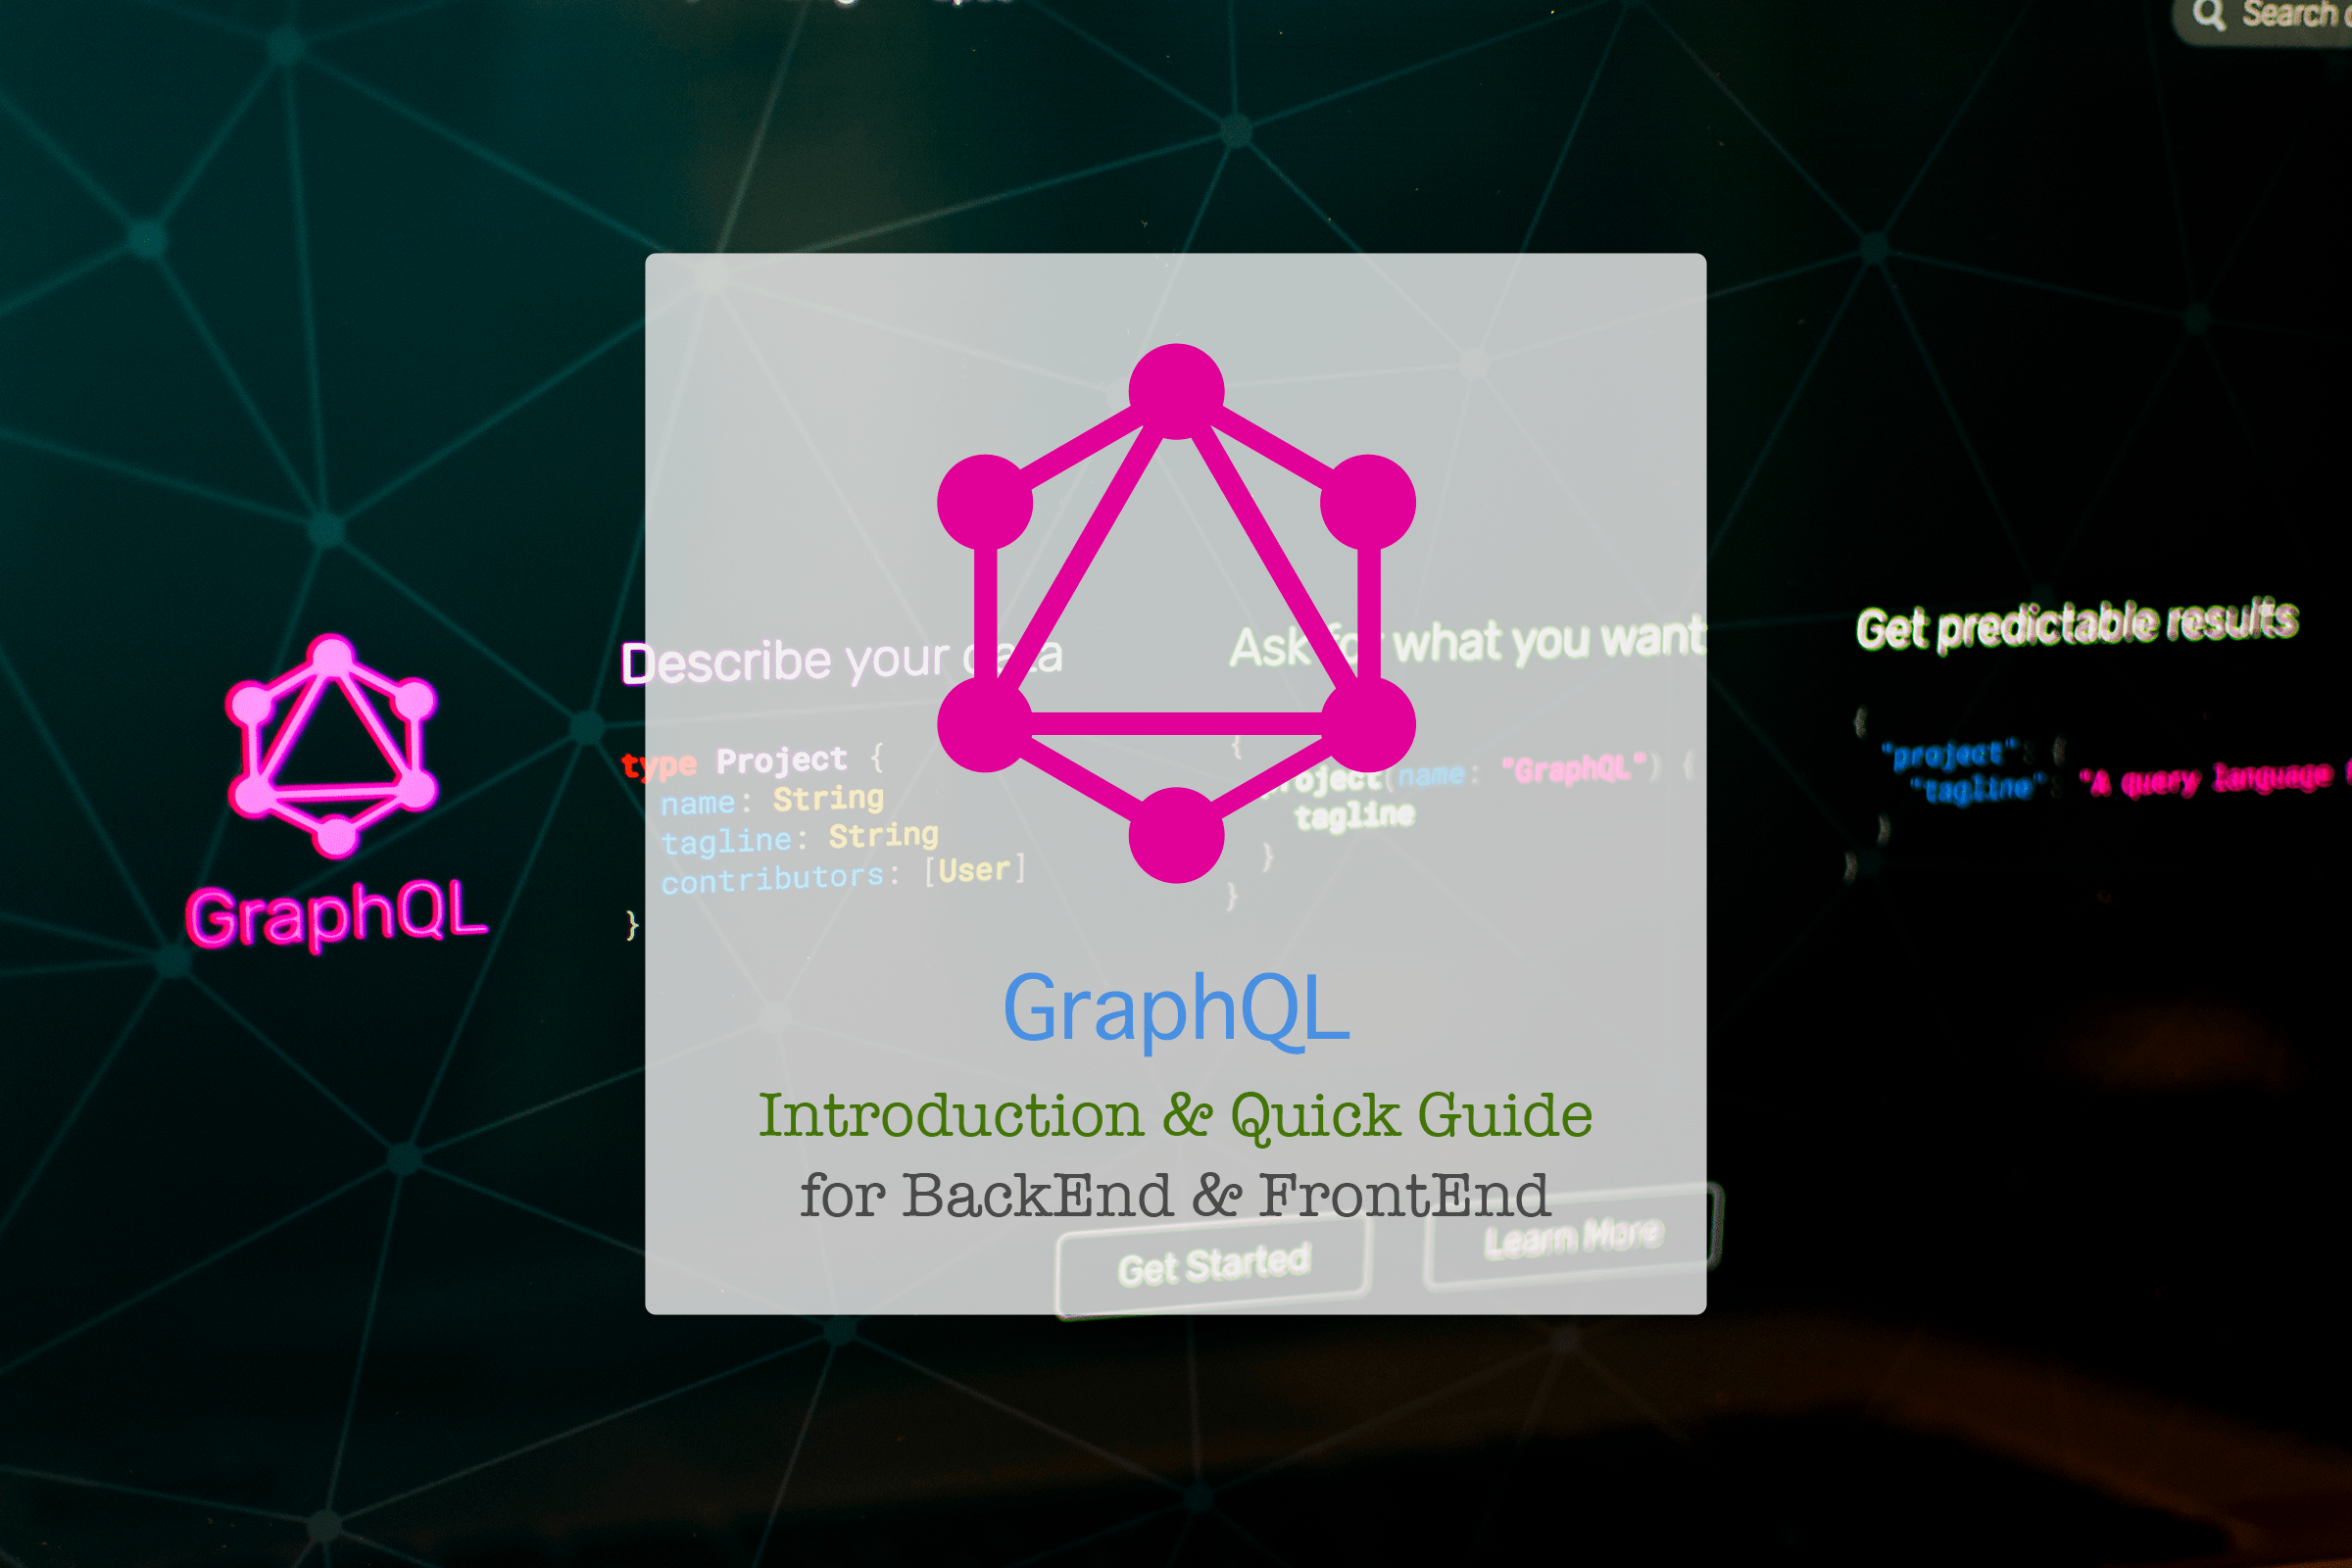 ⚡️Intro & Quick Guide to GraphQL for BackEnd & FrontEnd: Time to Hack